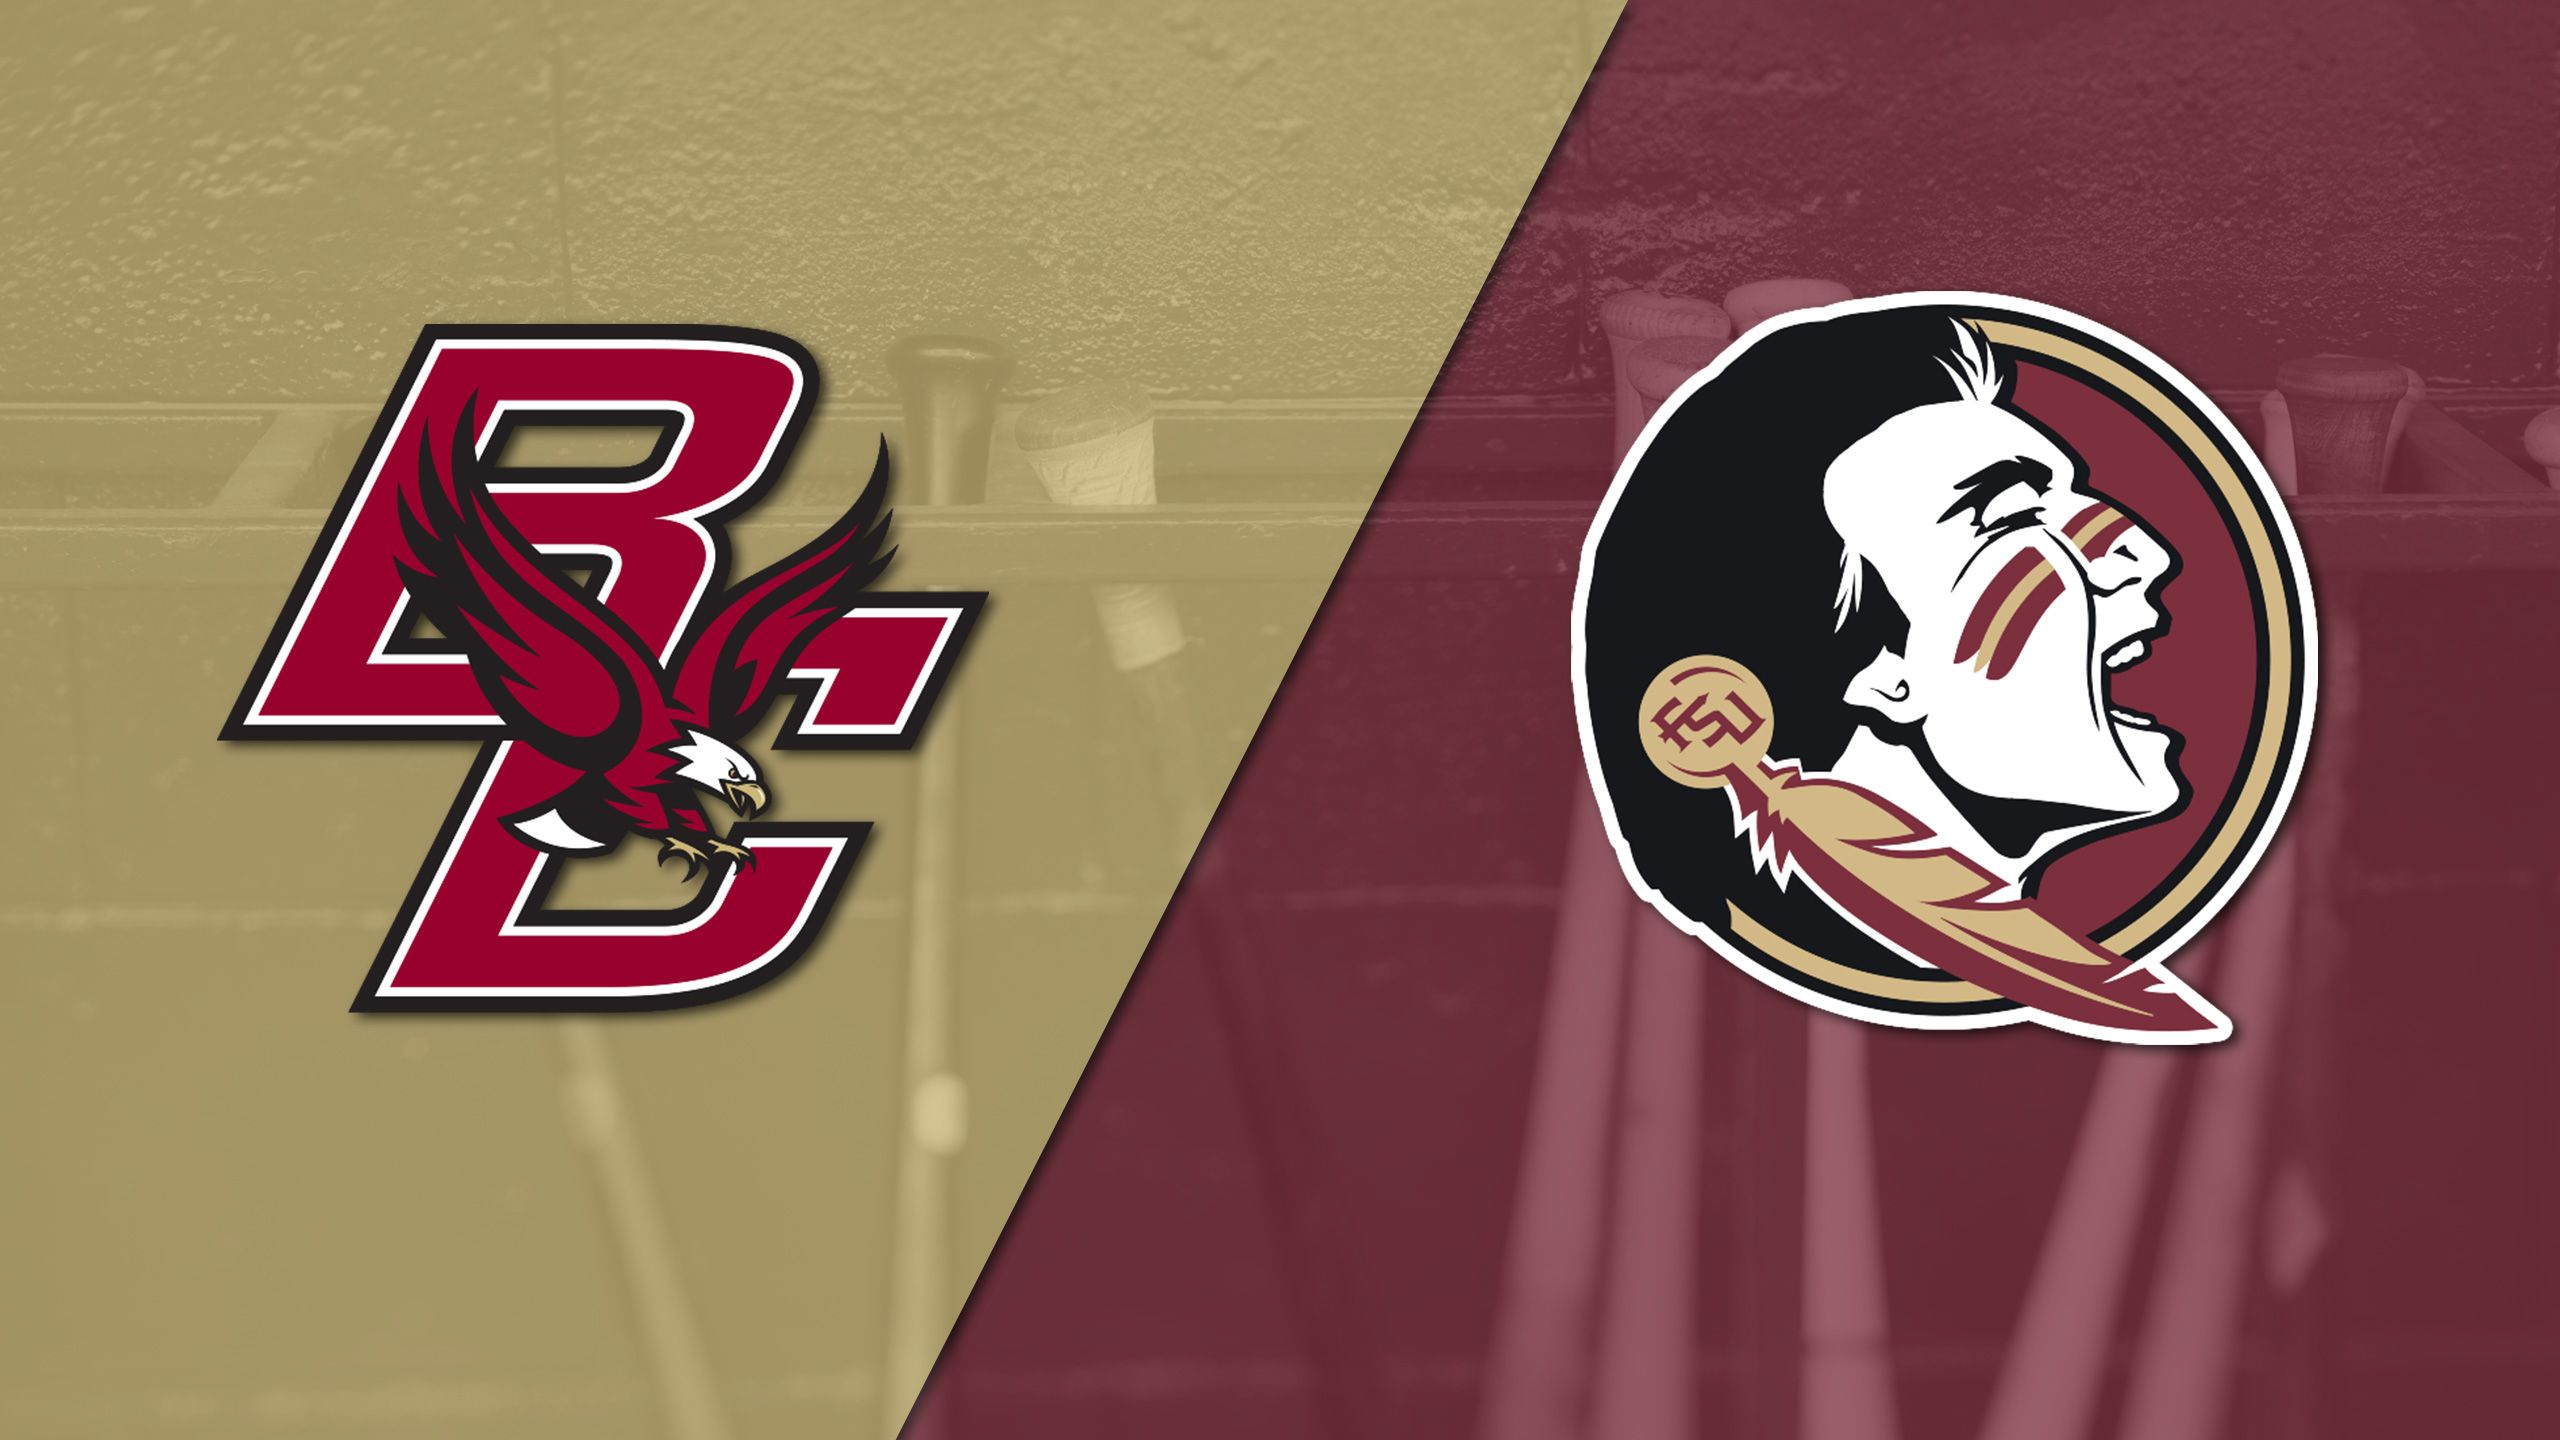 Boston College vs. #3 Florida State (Baseball)